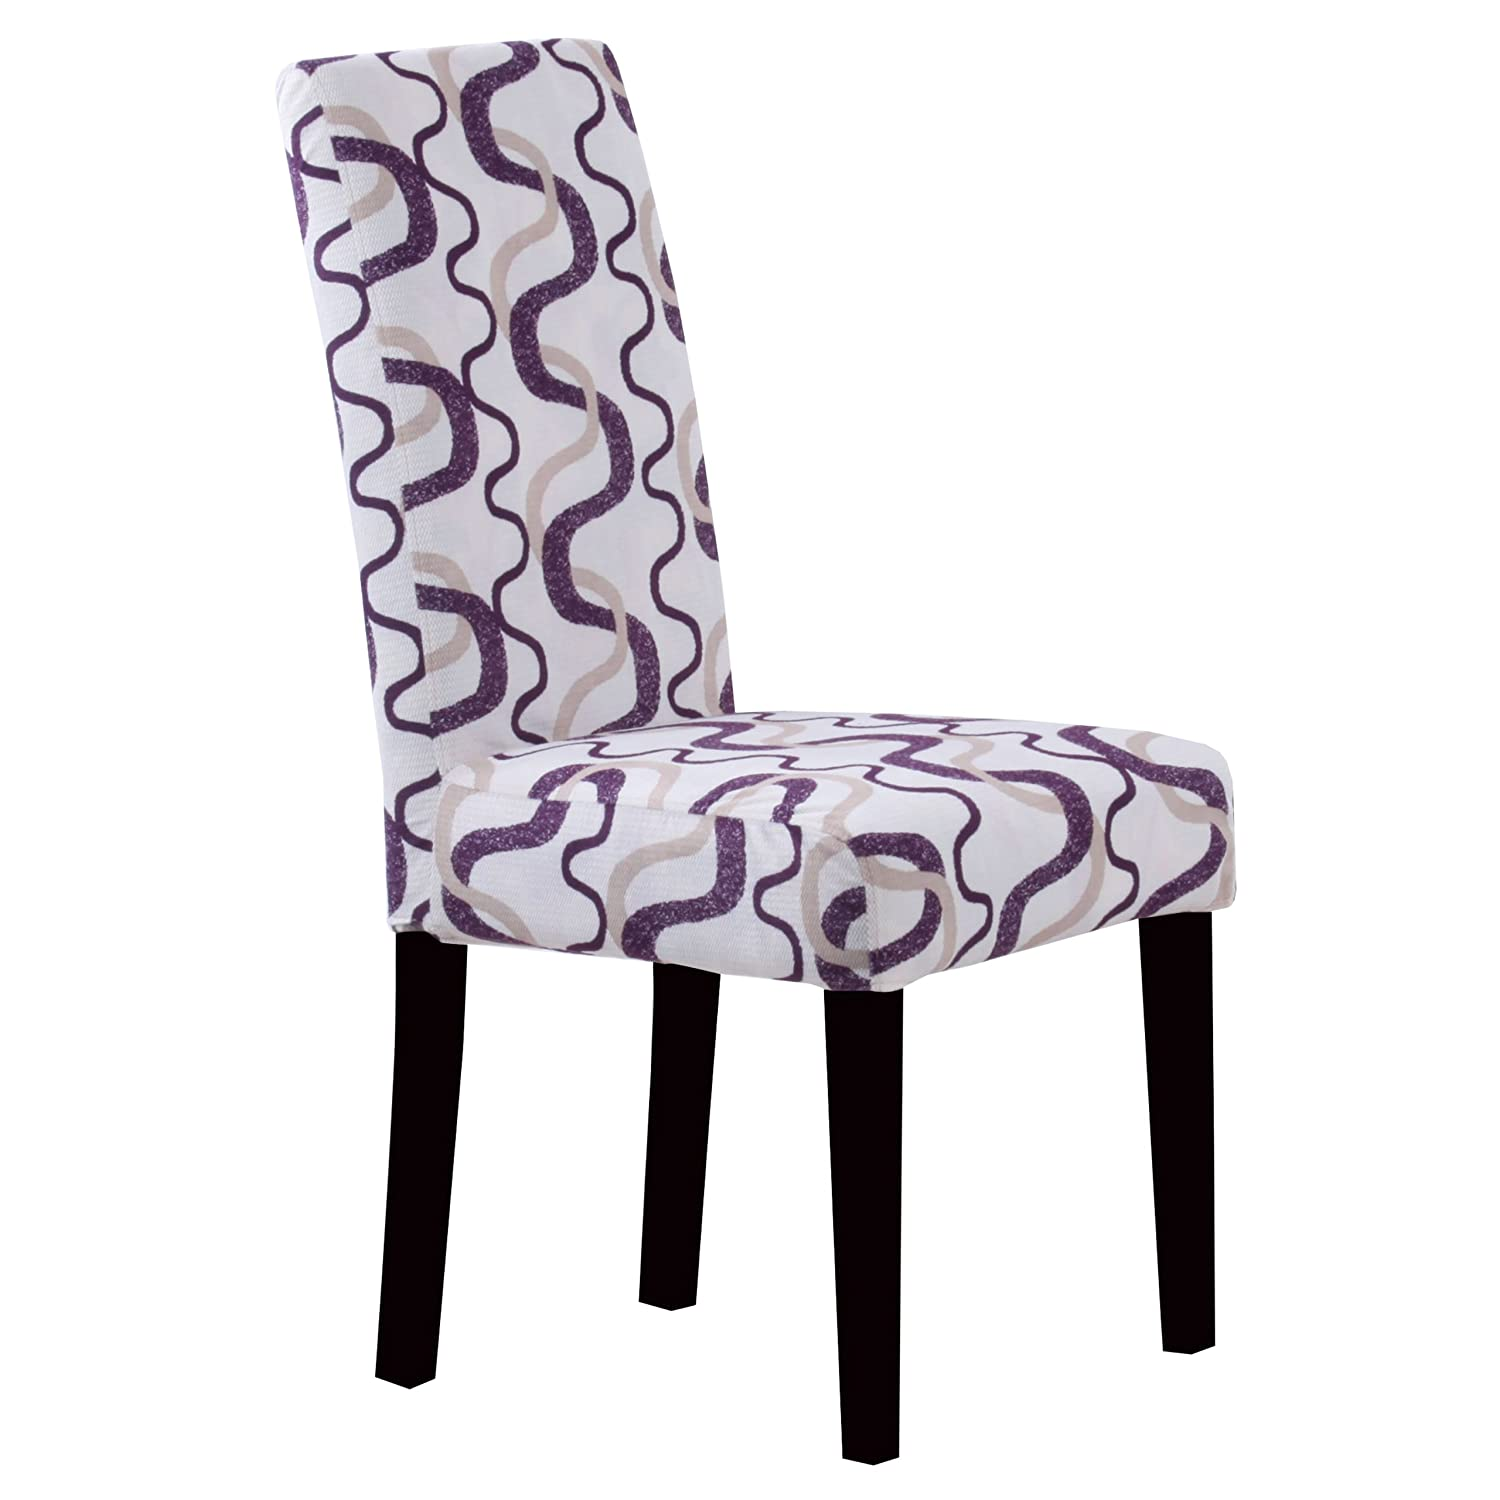 Surprising Monsoon Pacific Villa Fabric Dining Chairs Set Of 2 Berry Print Purple Short Links Chair Design For Home Short Linksinfo